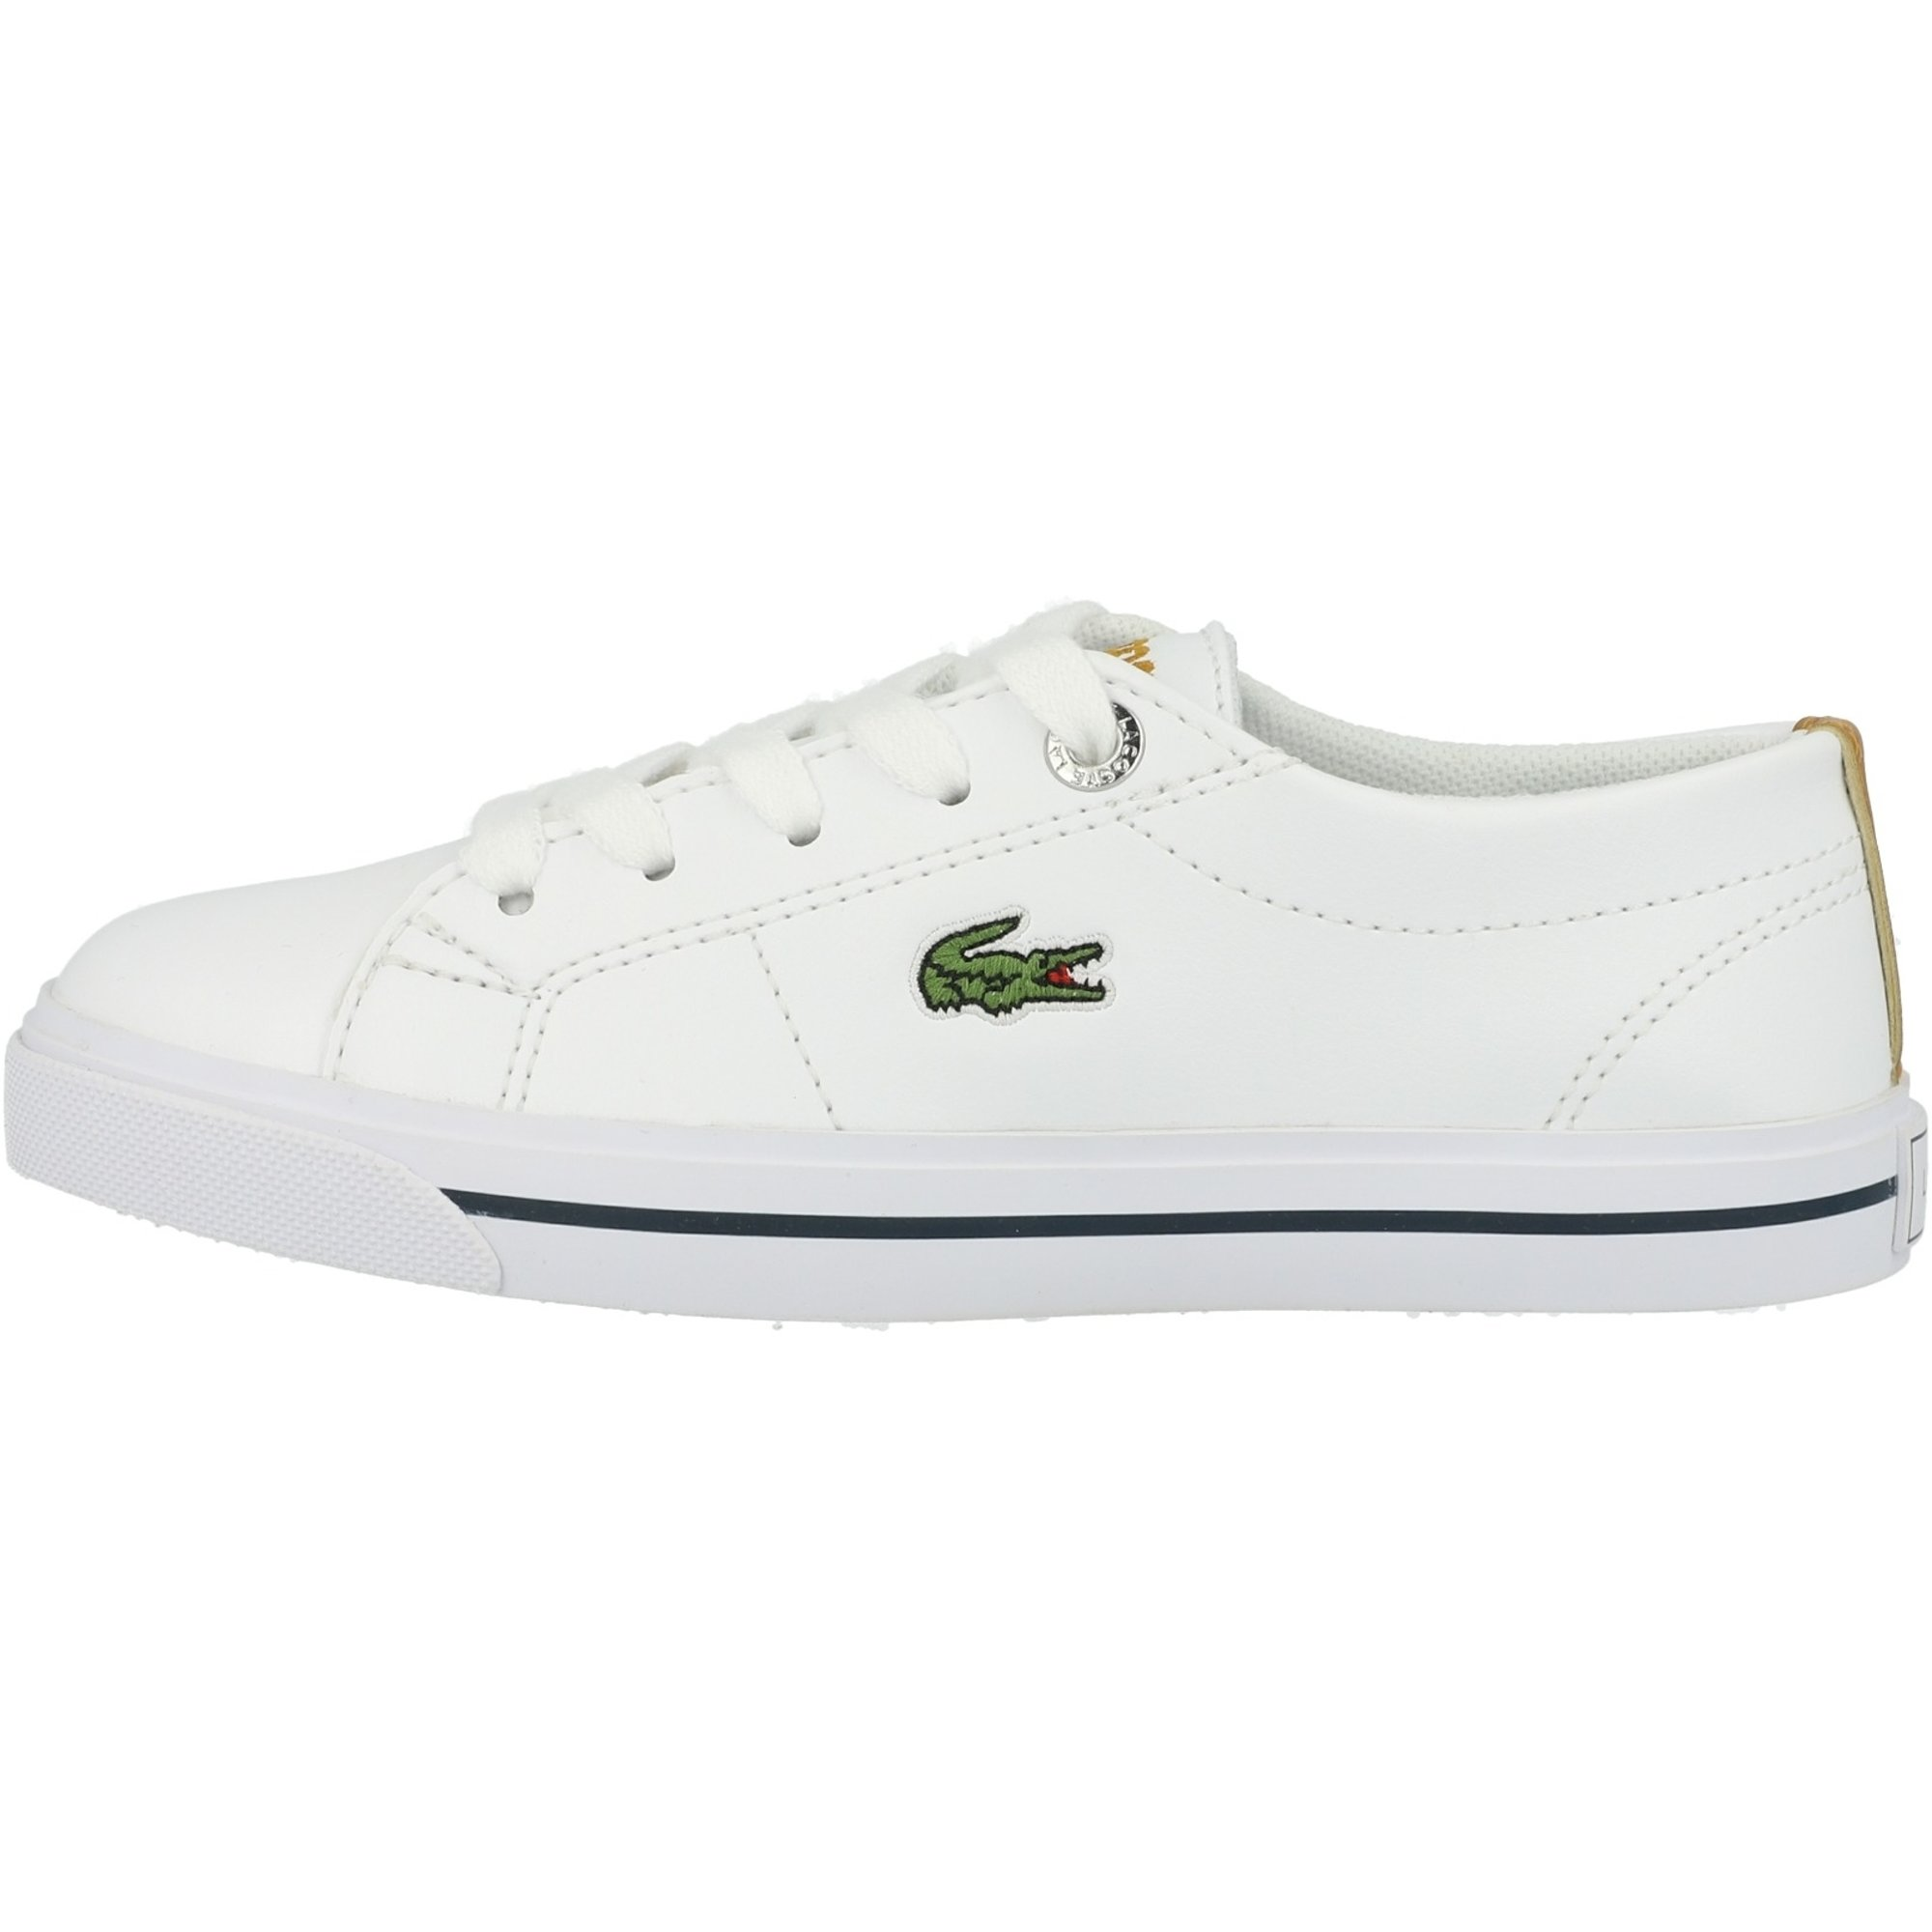 Lacoste Riberac 418 1 White//Dark Tan Synthetic Youth Trainers Shoes